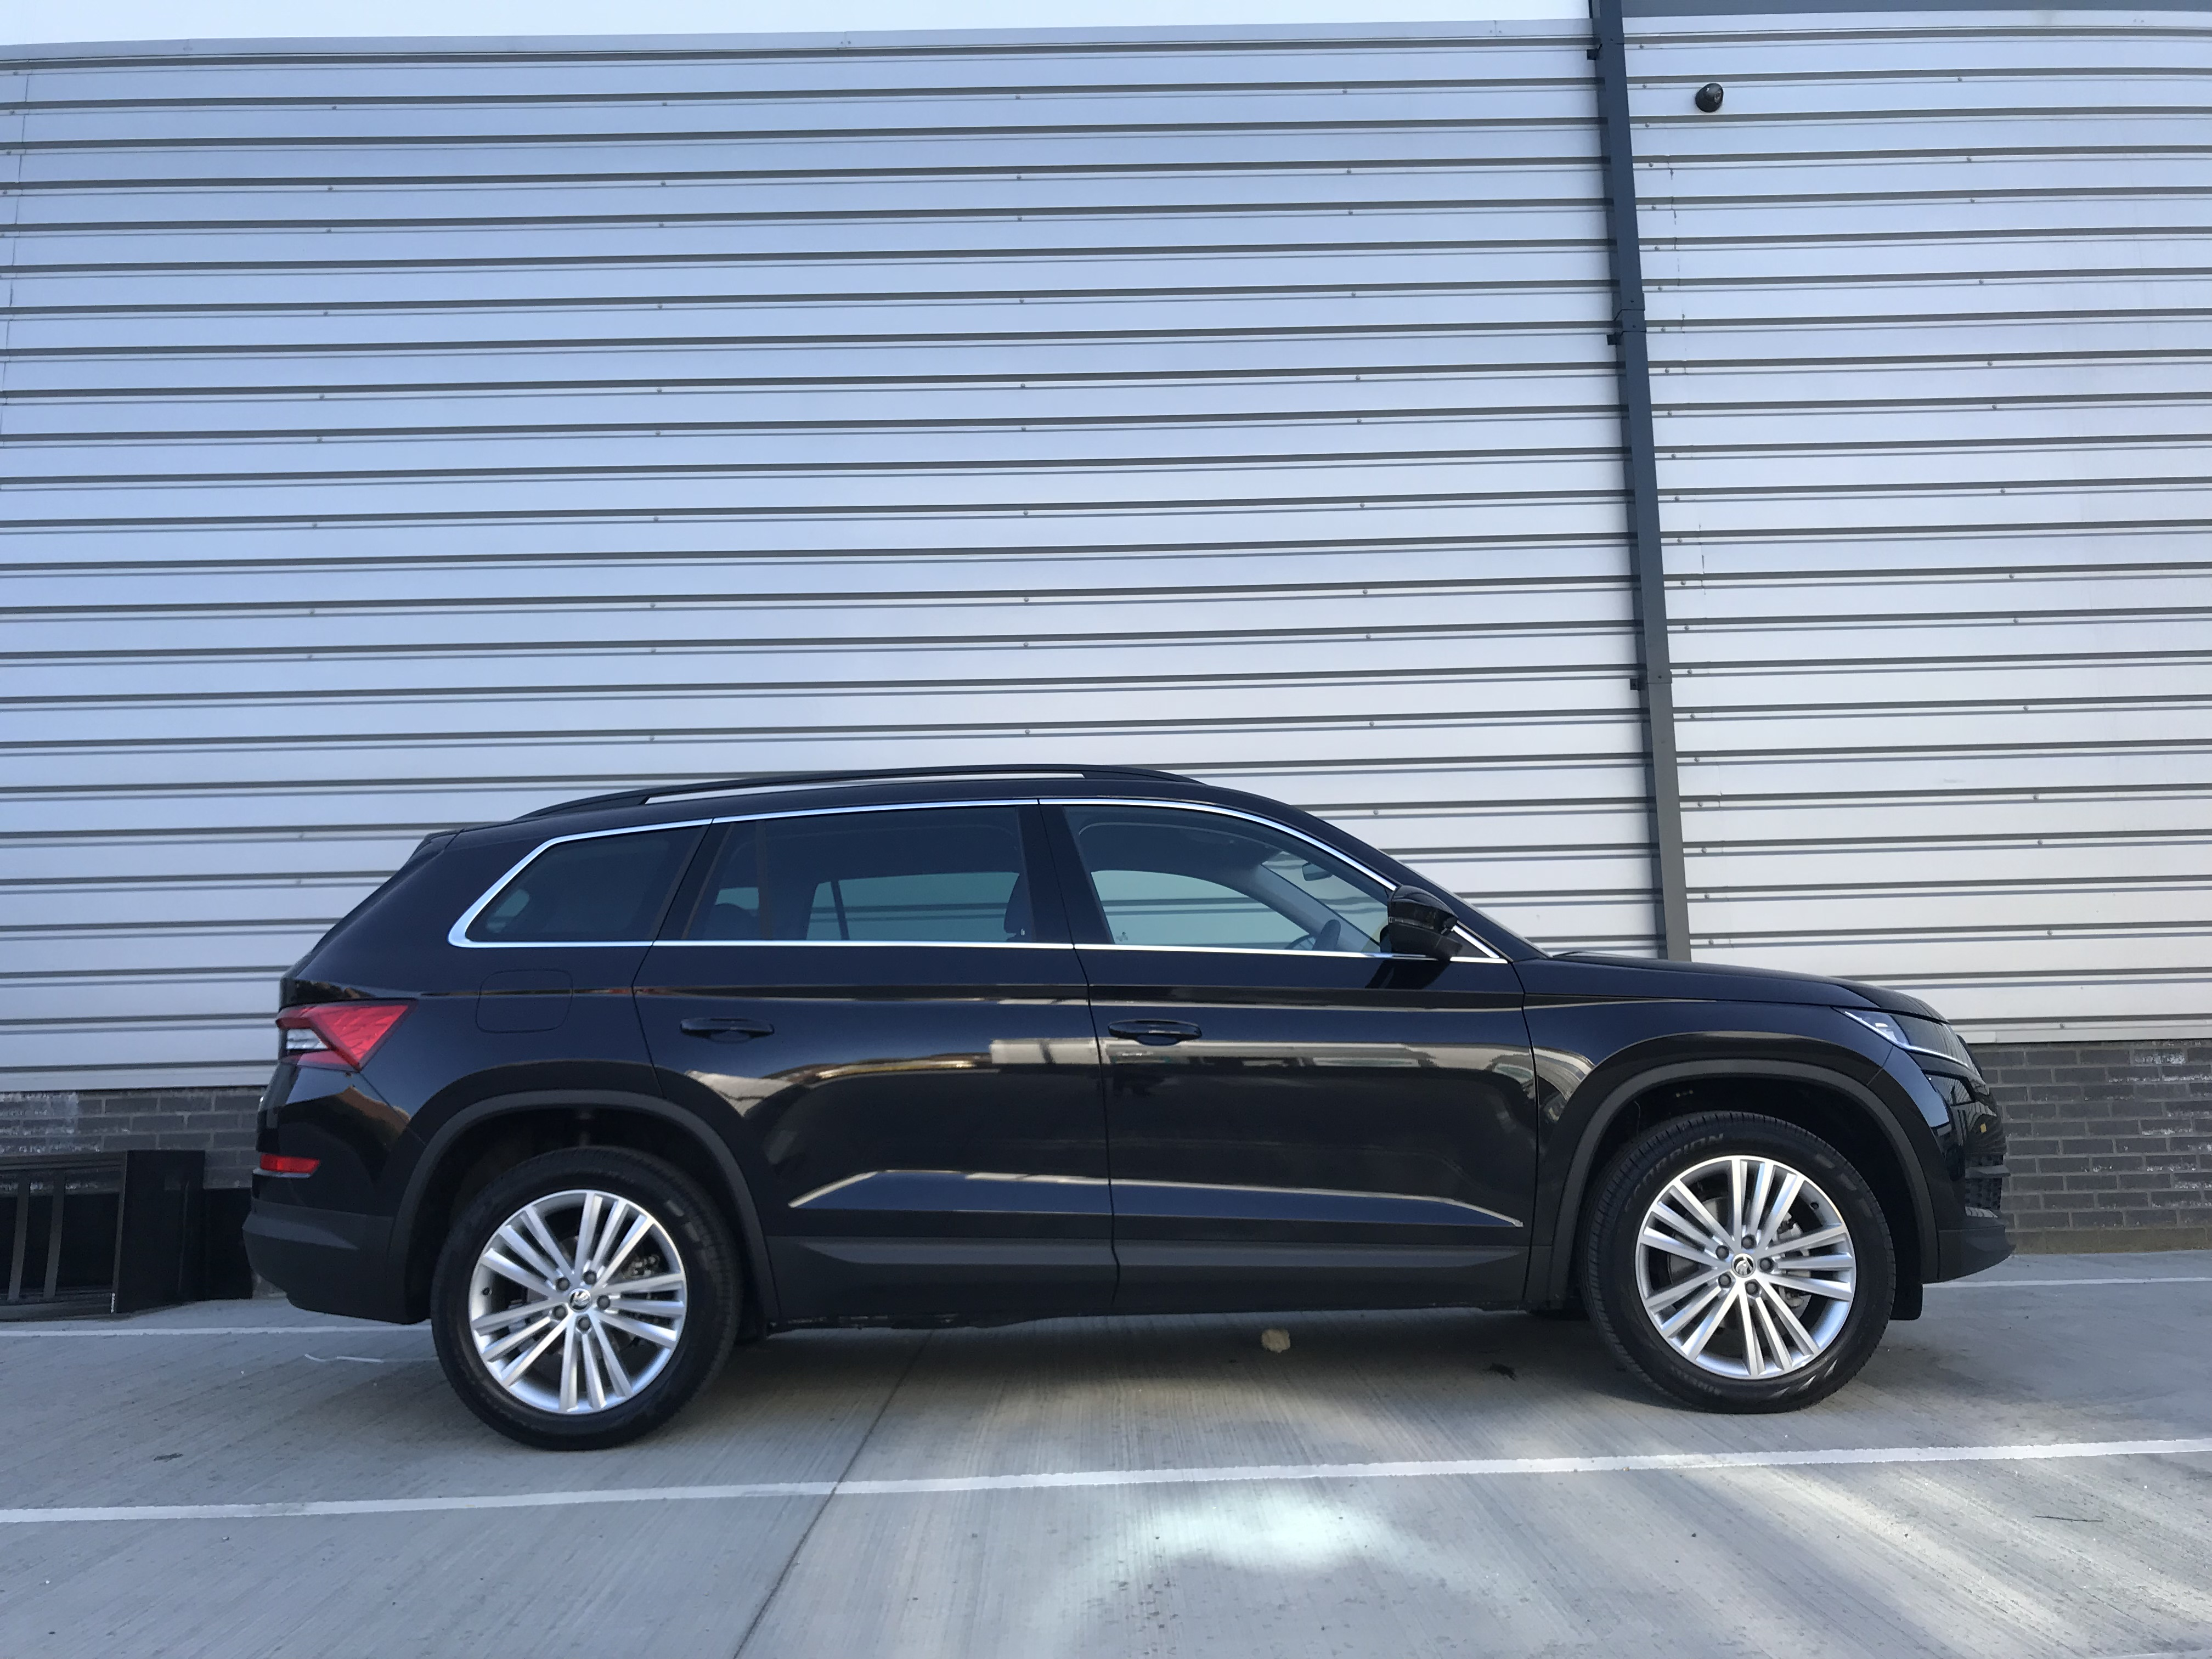 The Kodiaq's vast size means ample interior room